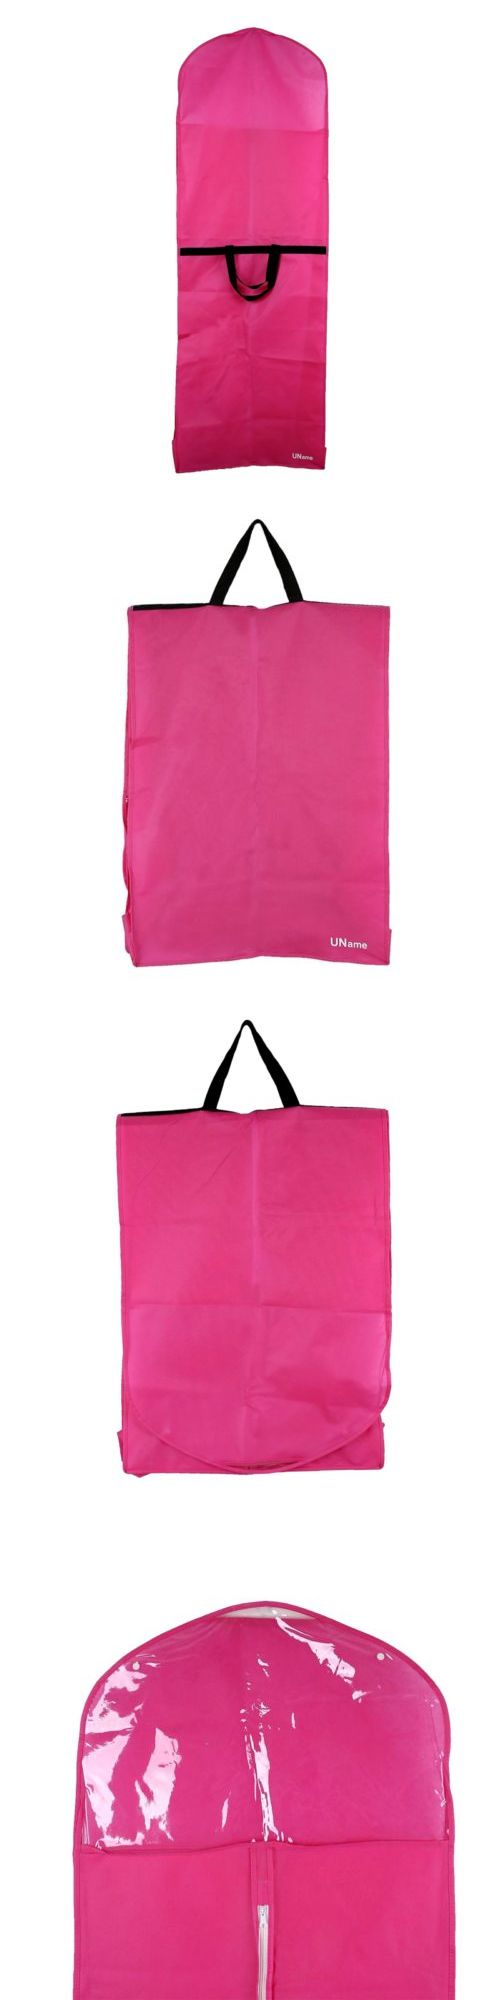 Storage Bags and Preservation 175631: Dii Breathable Garment Bag For ...